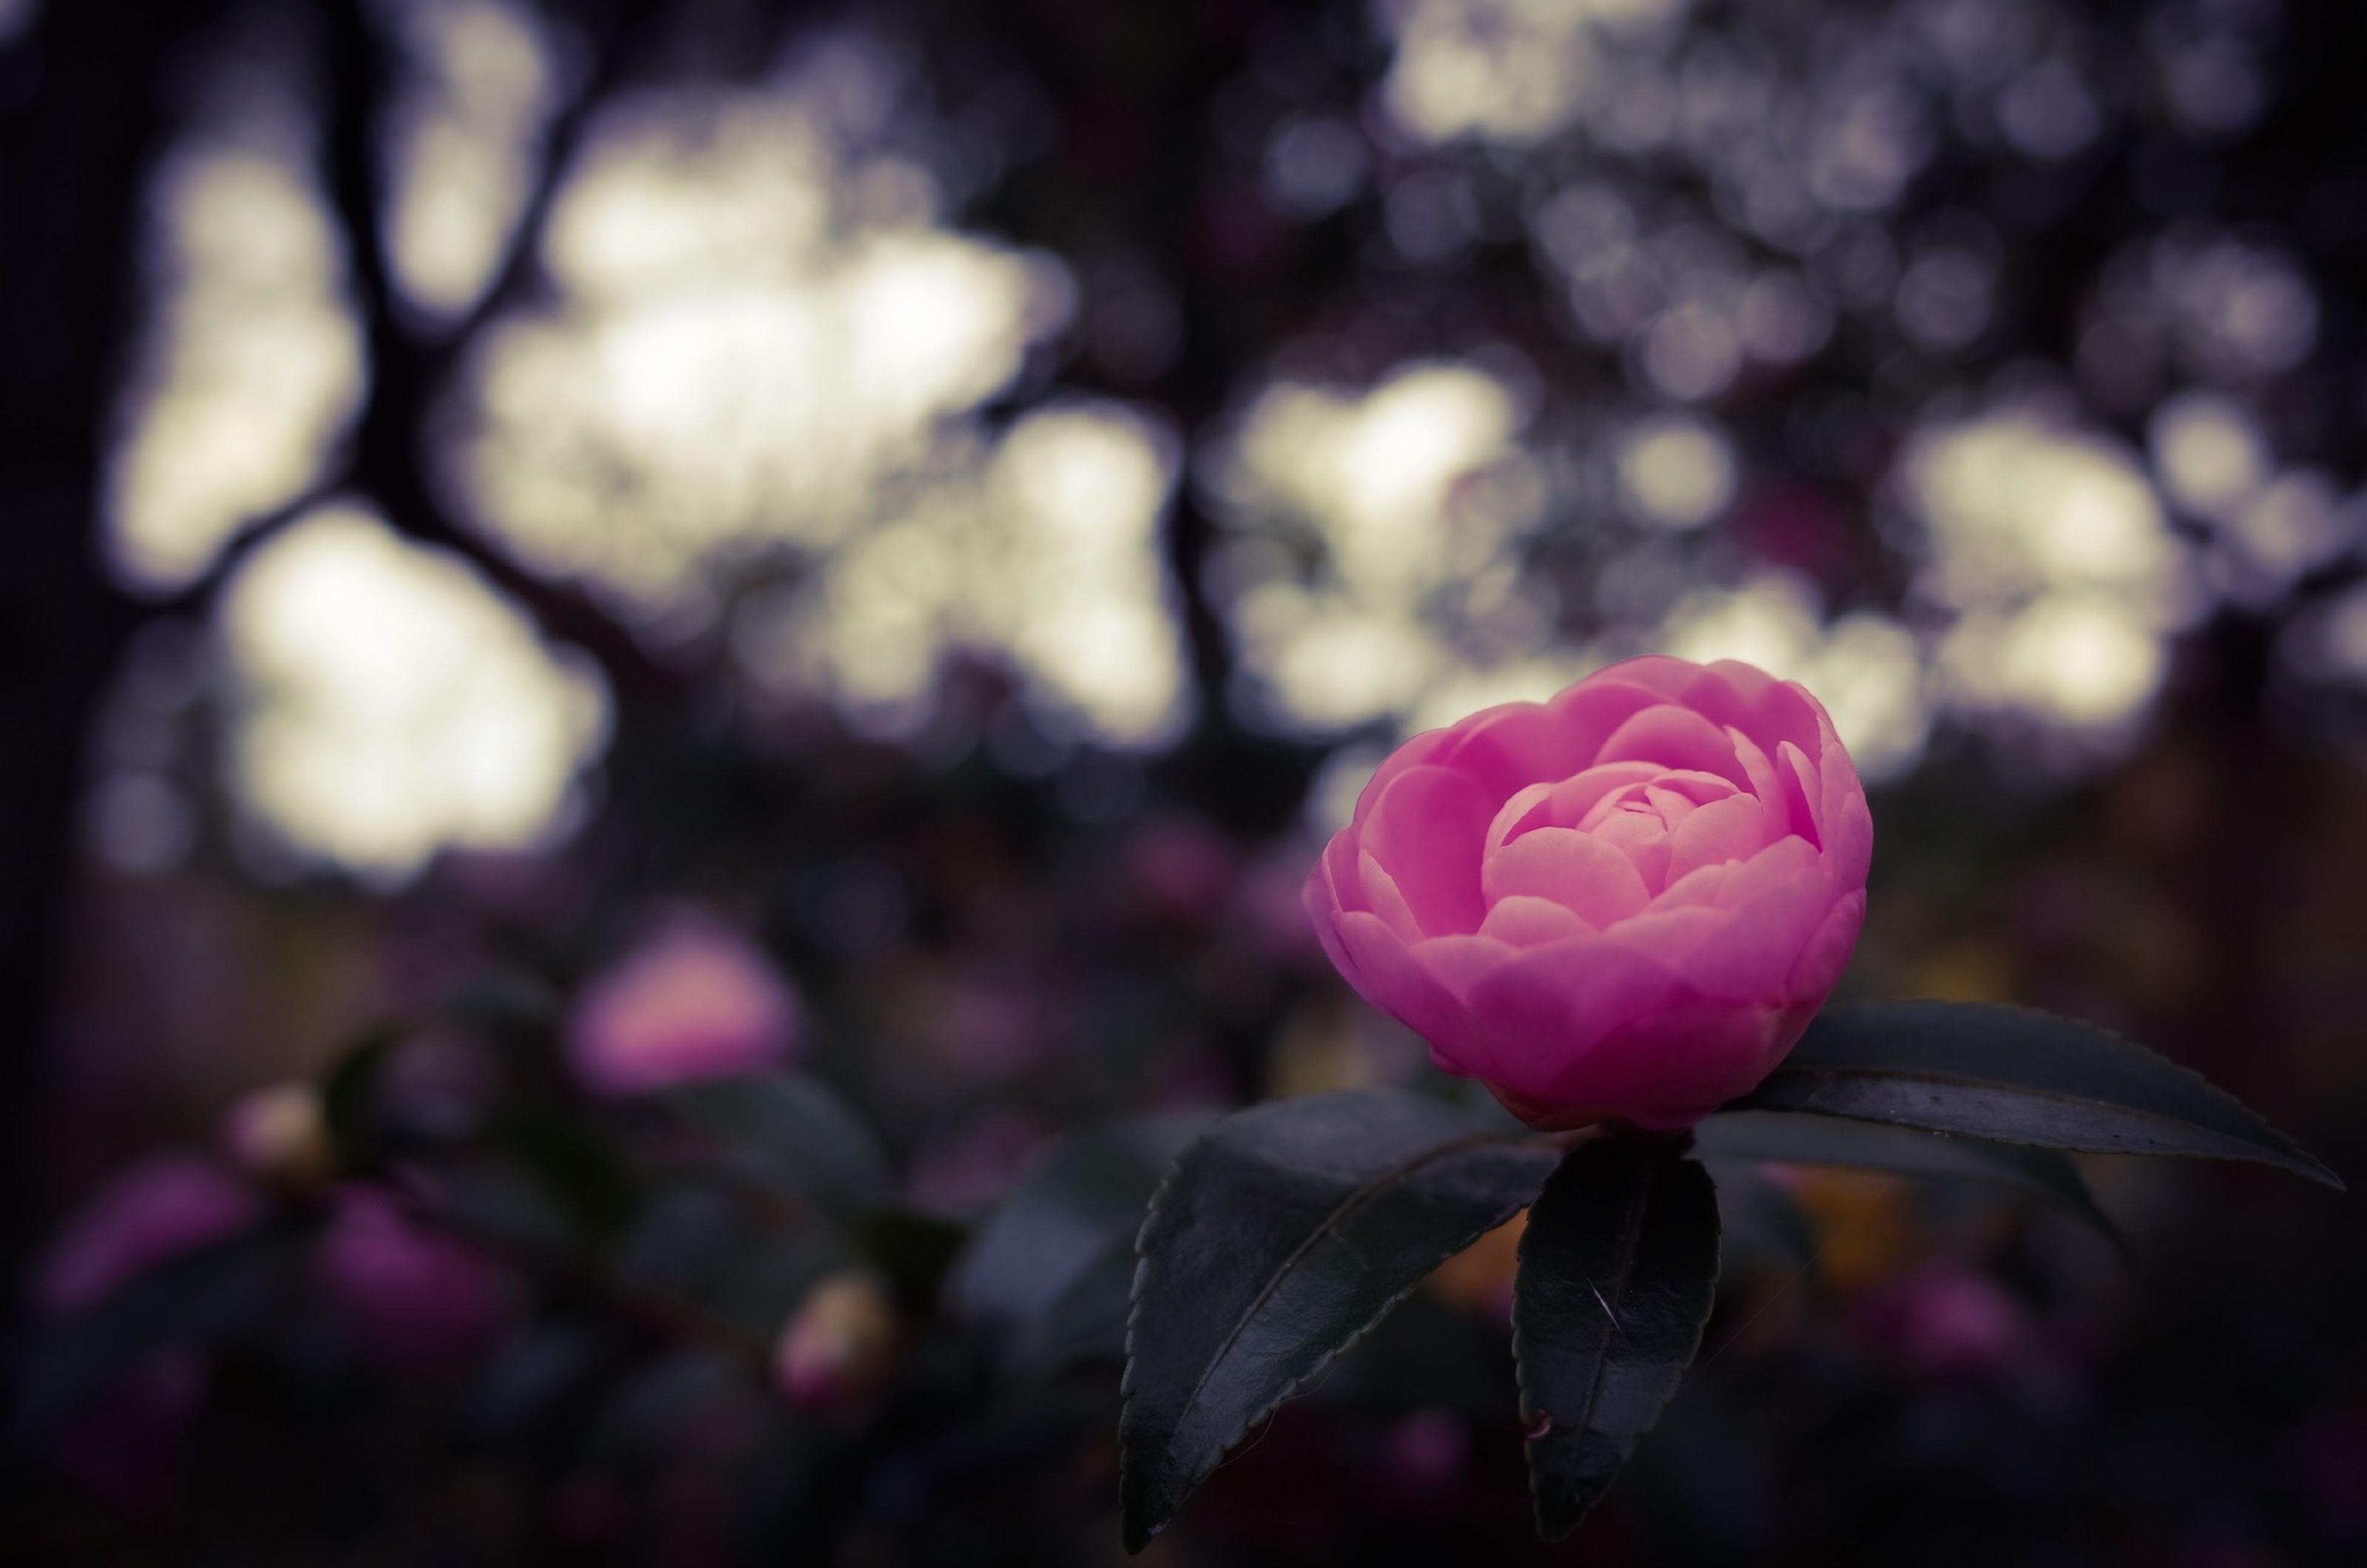 flower, petal, fragility, pink color, growth, focus on foreground, freshness, beauty in nature, close-up, leaf, nature, flower head, rose - flower, plant, blooming, outdoors, bud, day, in bloom, pink